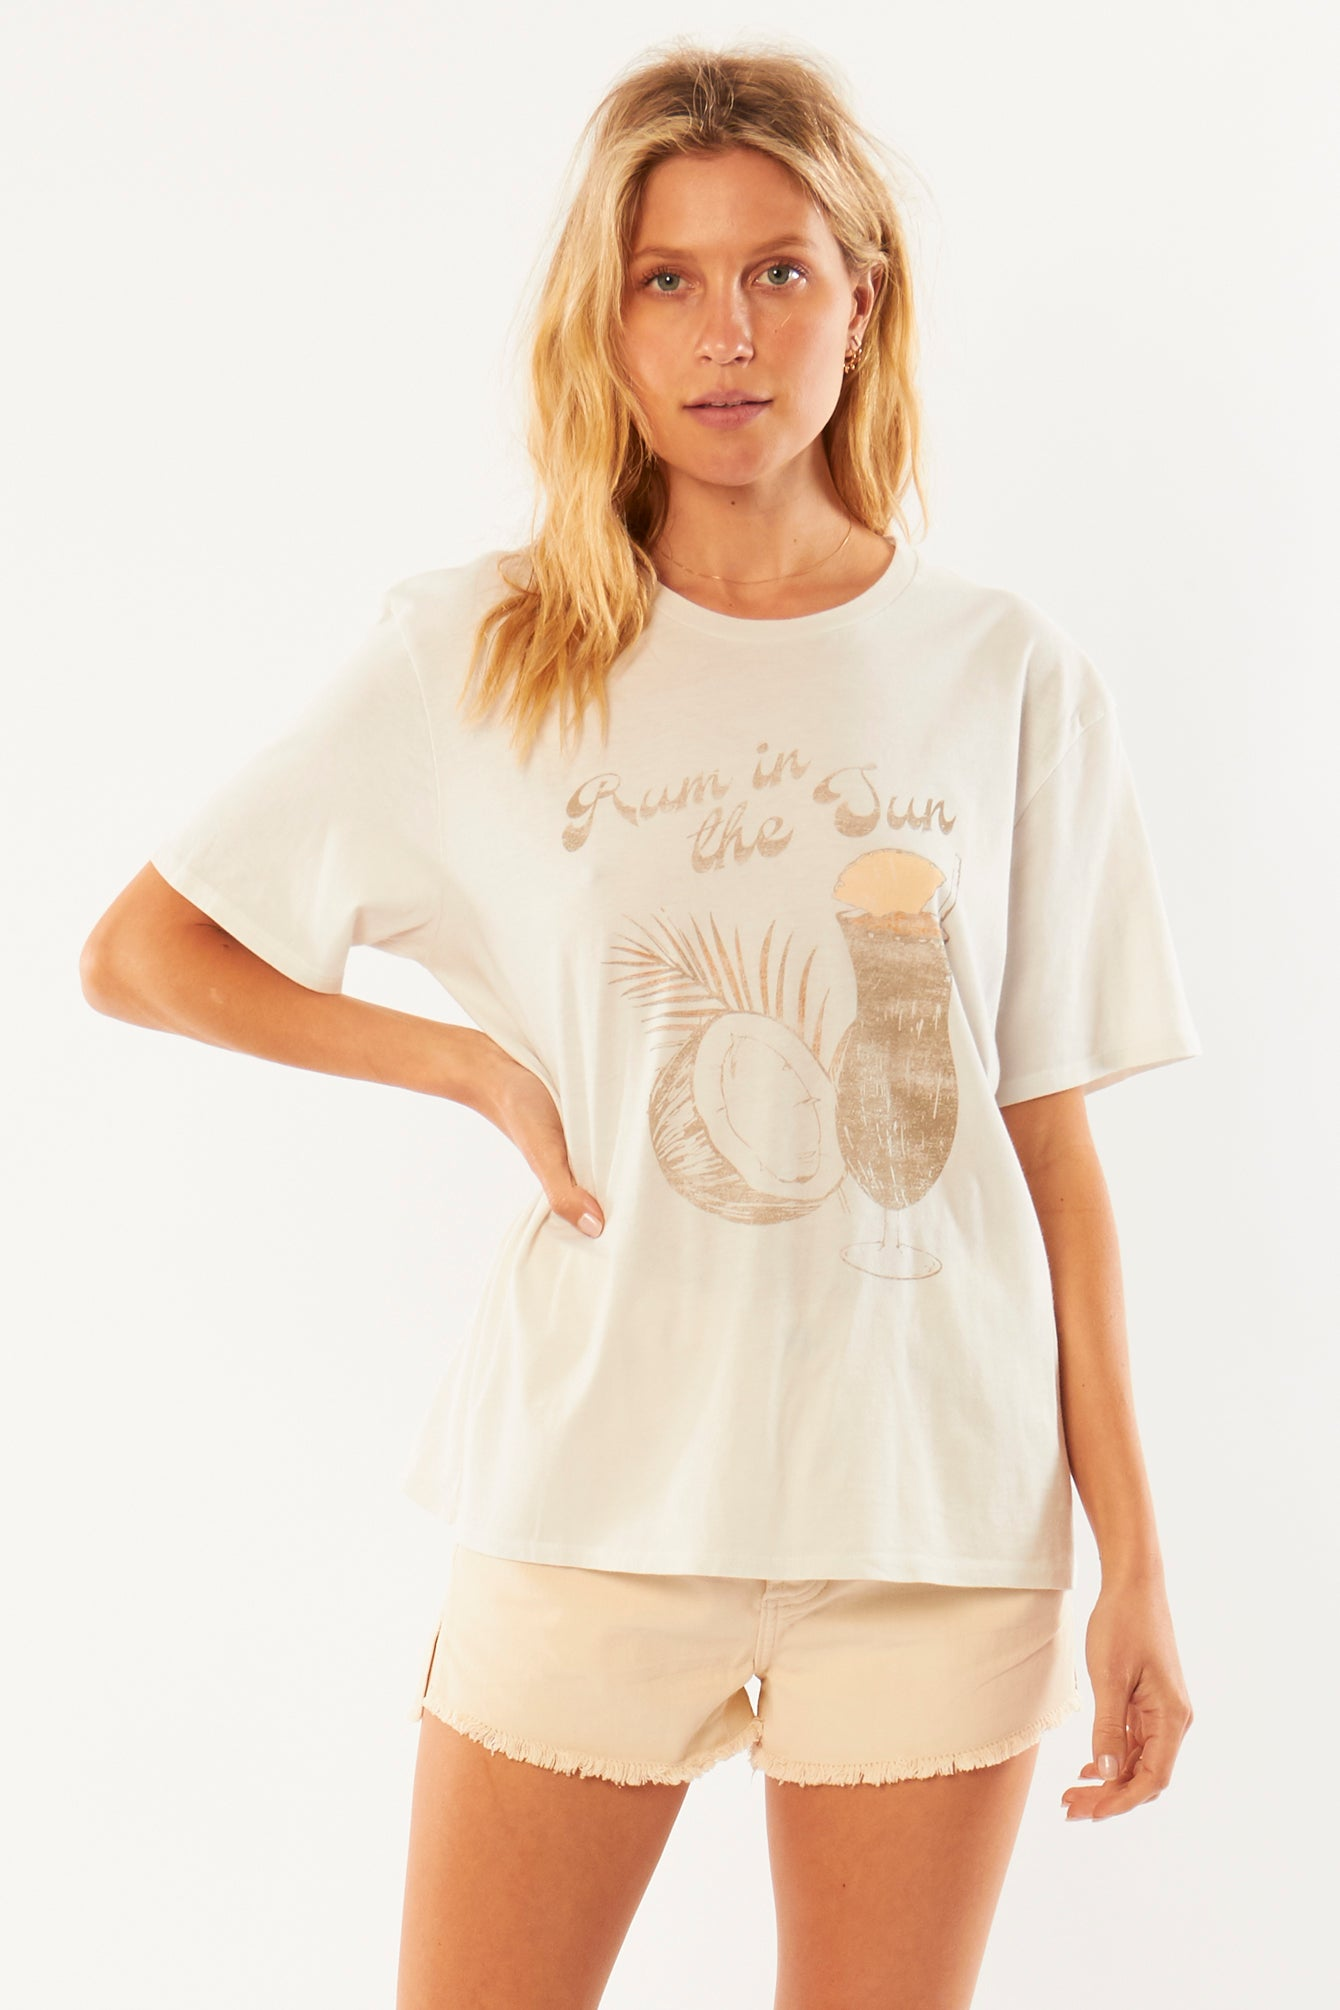 Rum in the Sand Tee in Vintage White